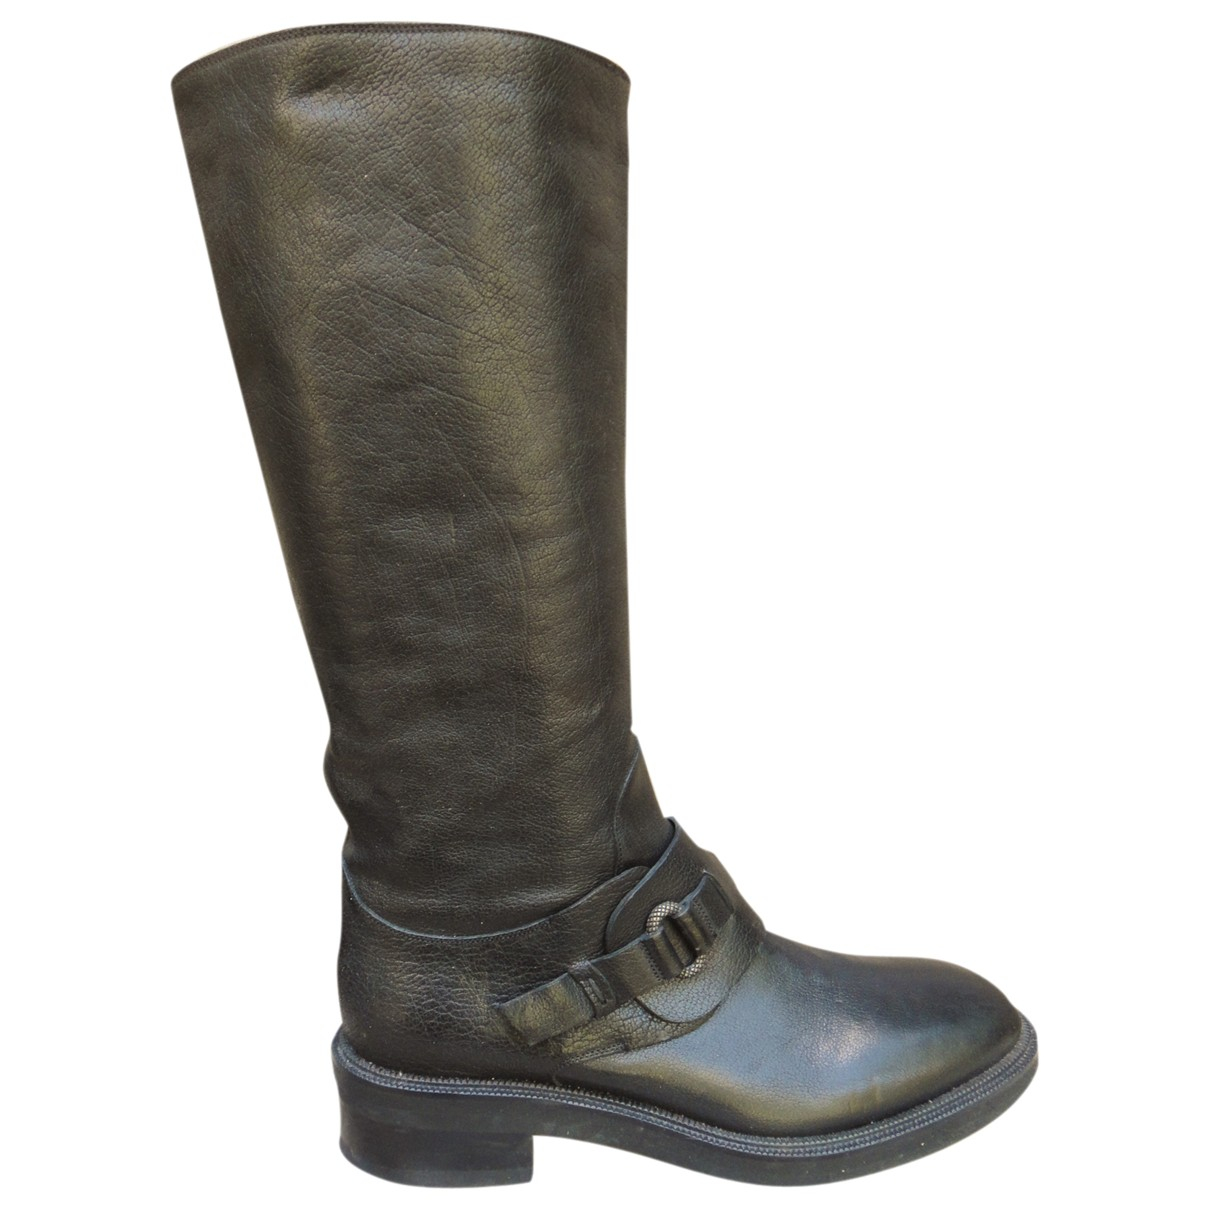 Sartore \N Black Leather Boots for Women 37.5 IT